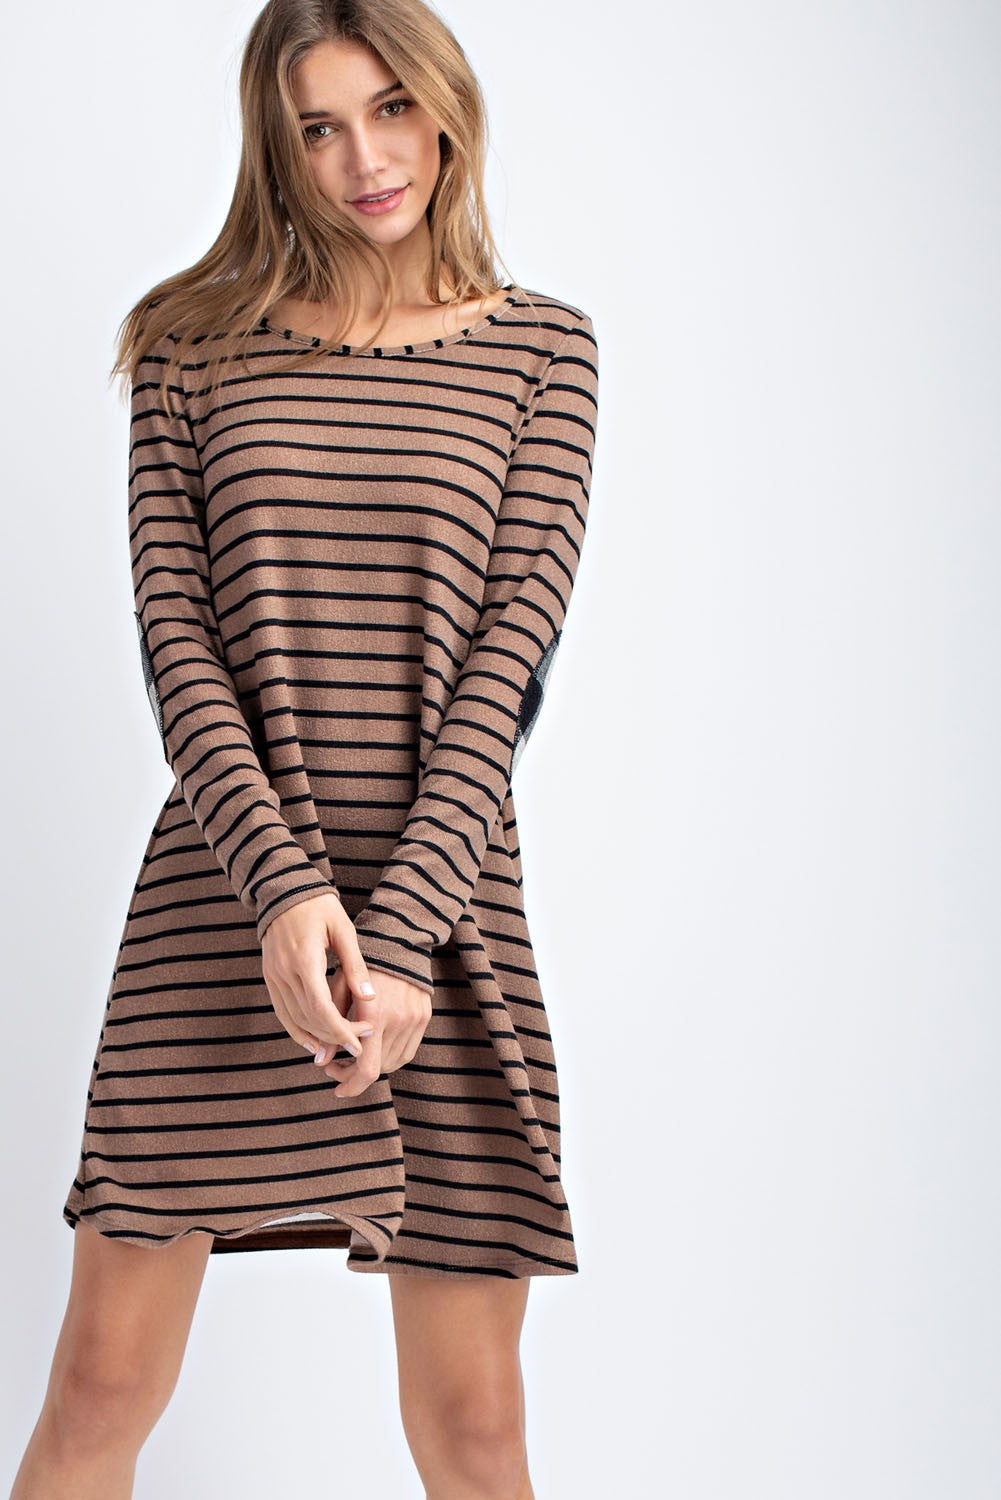 Mocha Striped Dress